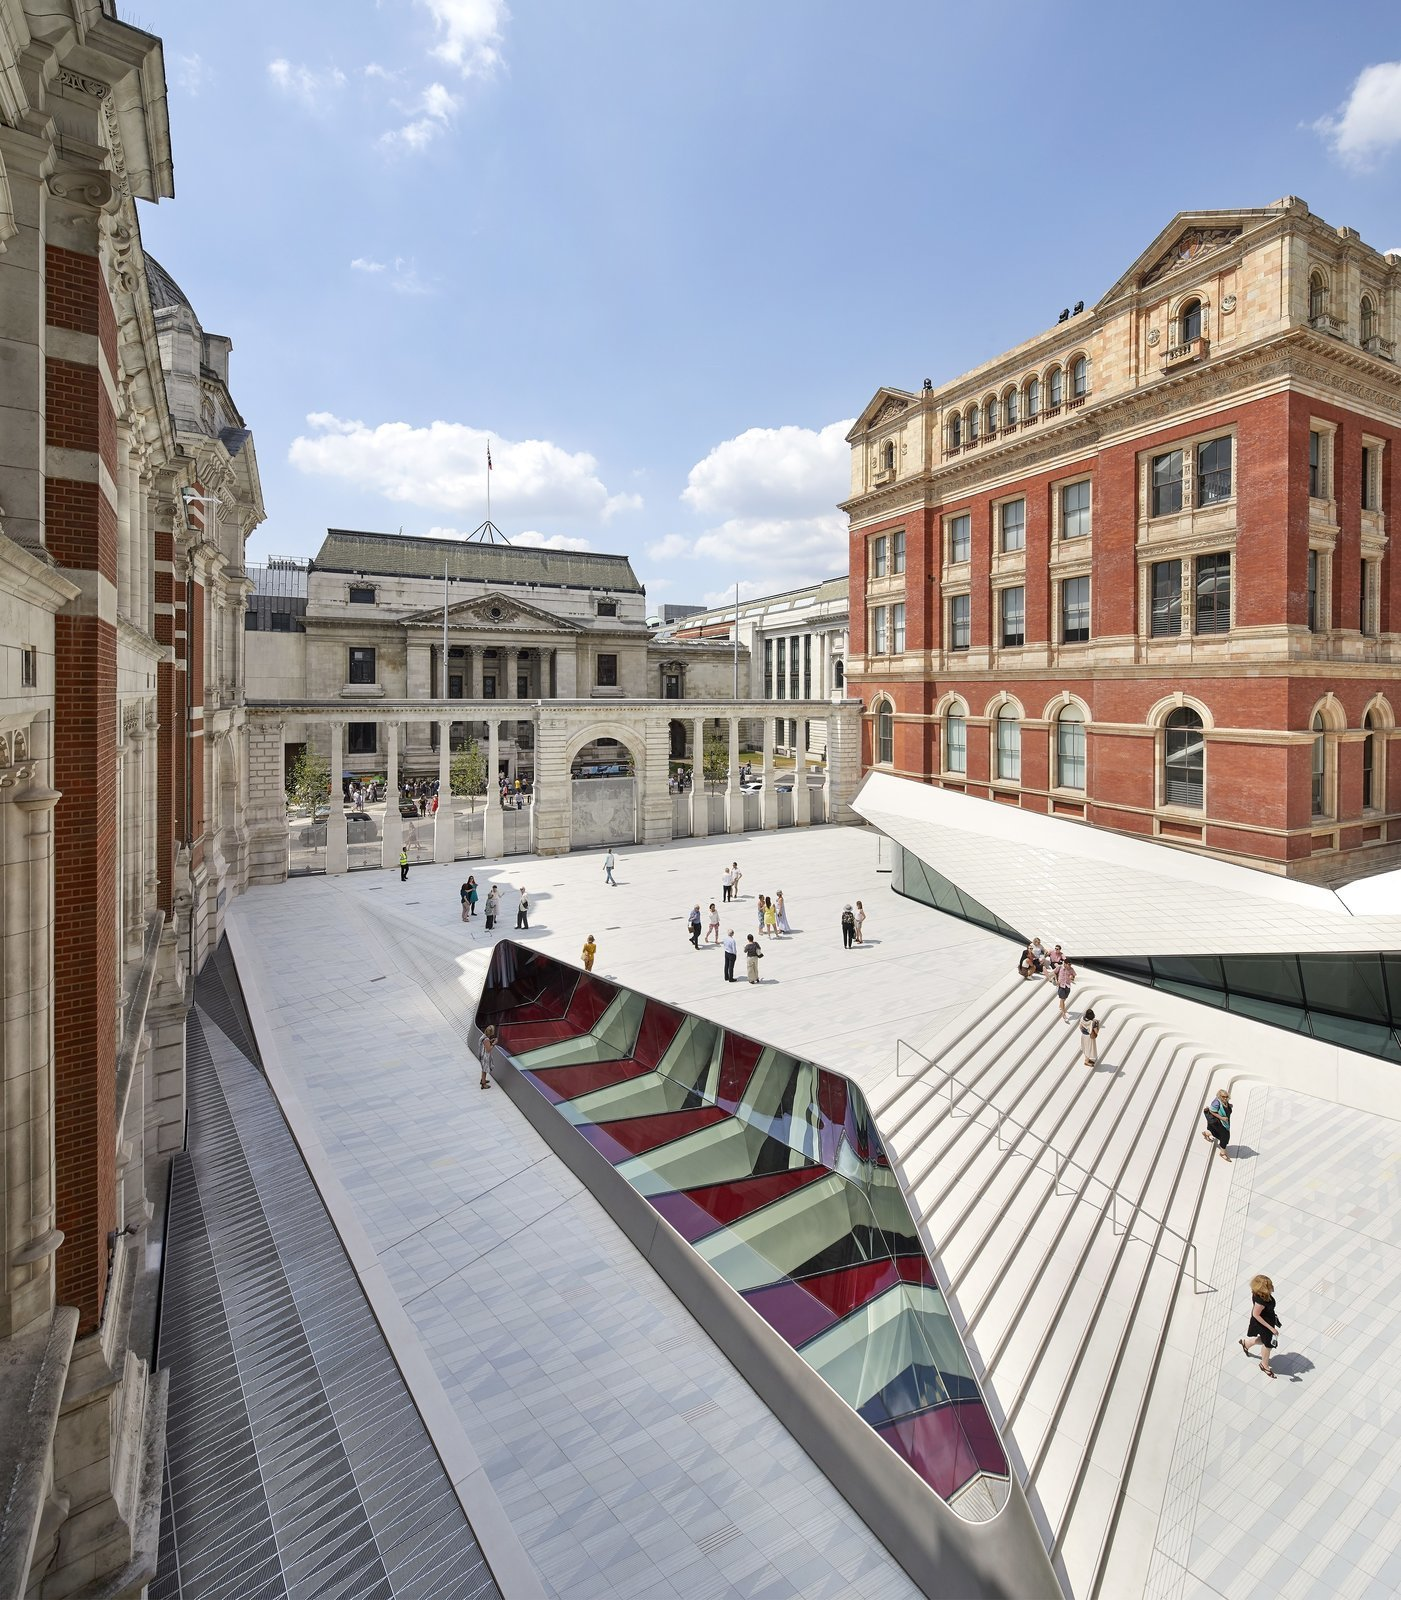 Part of an Epic Expansion, London's V&A Museum Paves its Courtyard With 11,000 Porcelain Tiles